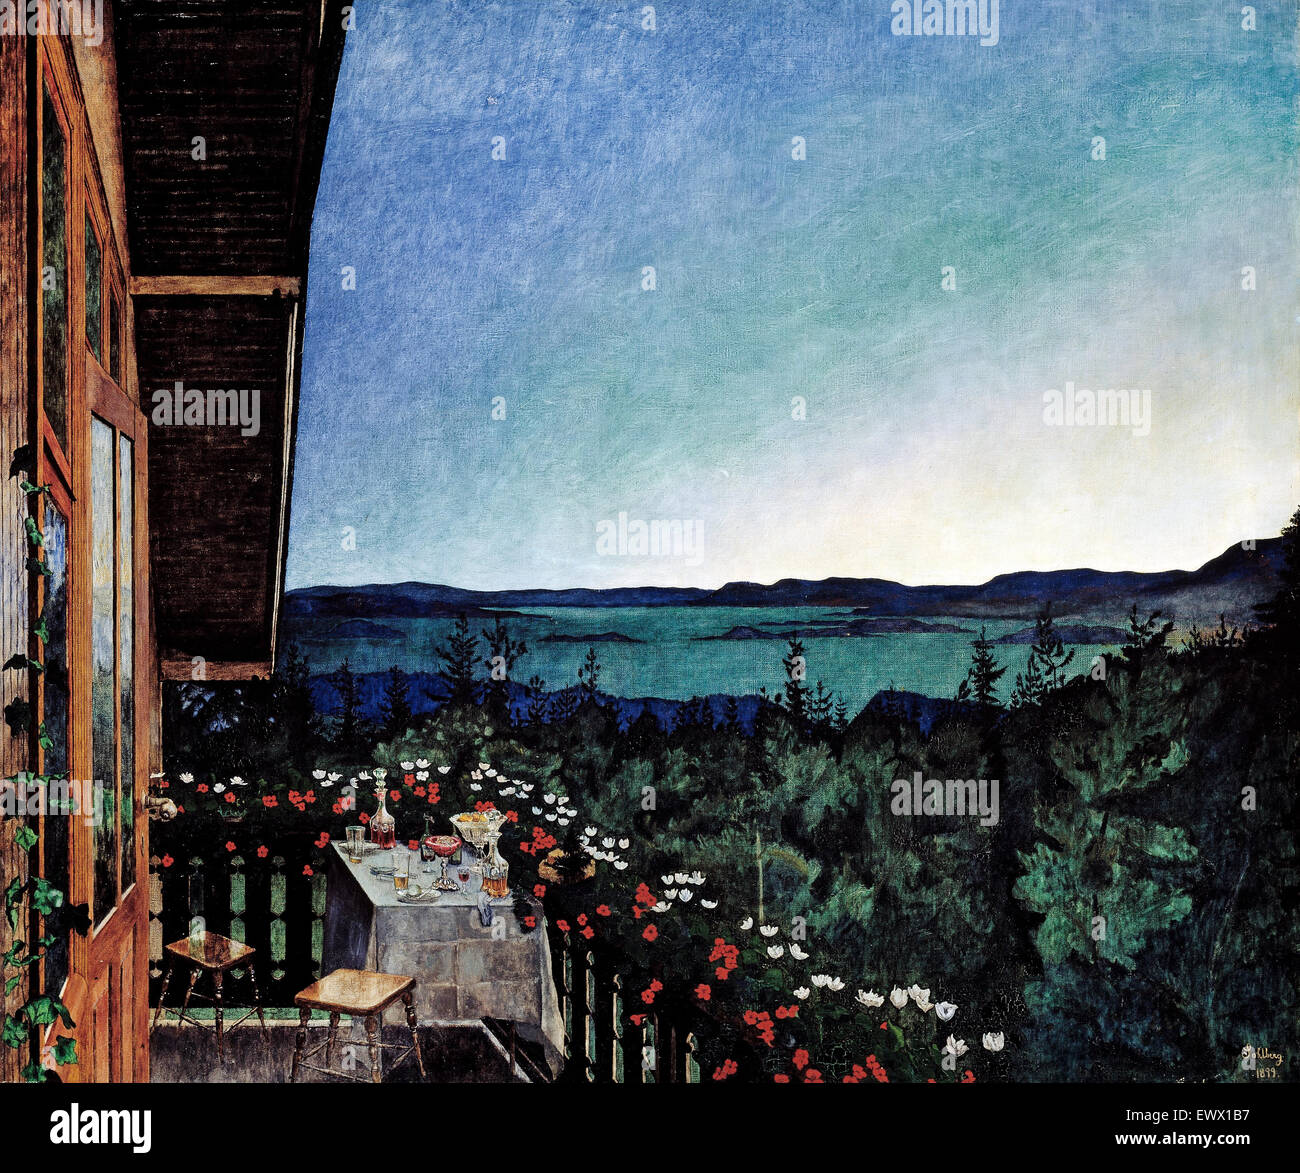 Harald Sohlberg, Summer Night 1899 Oil on canvas. National Museum of Art, Architecture and Design, Oslo, Norway. - Stock Image